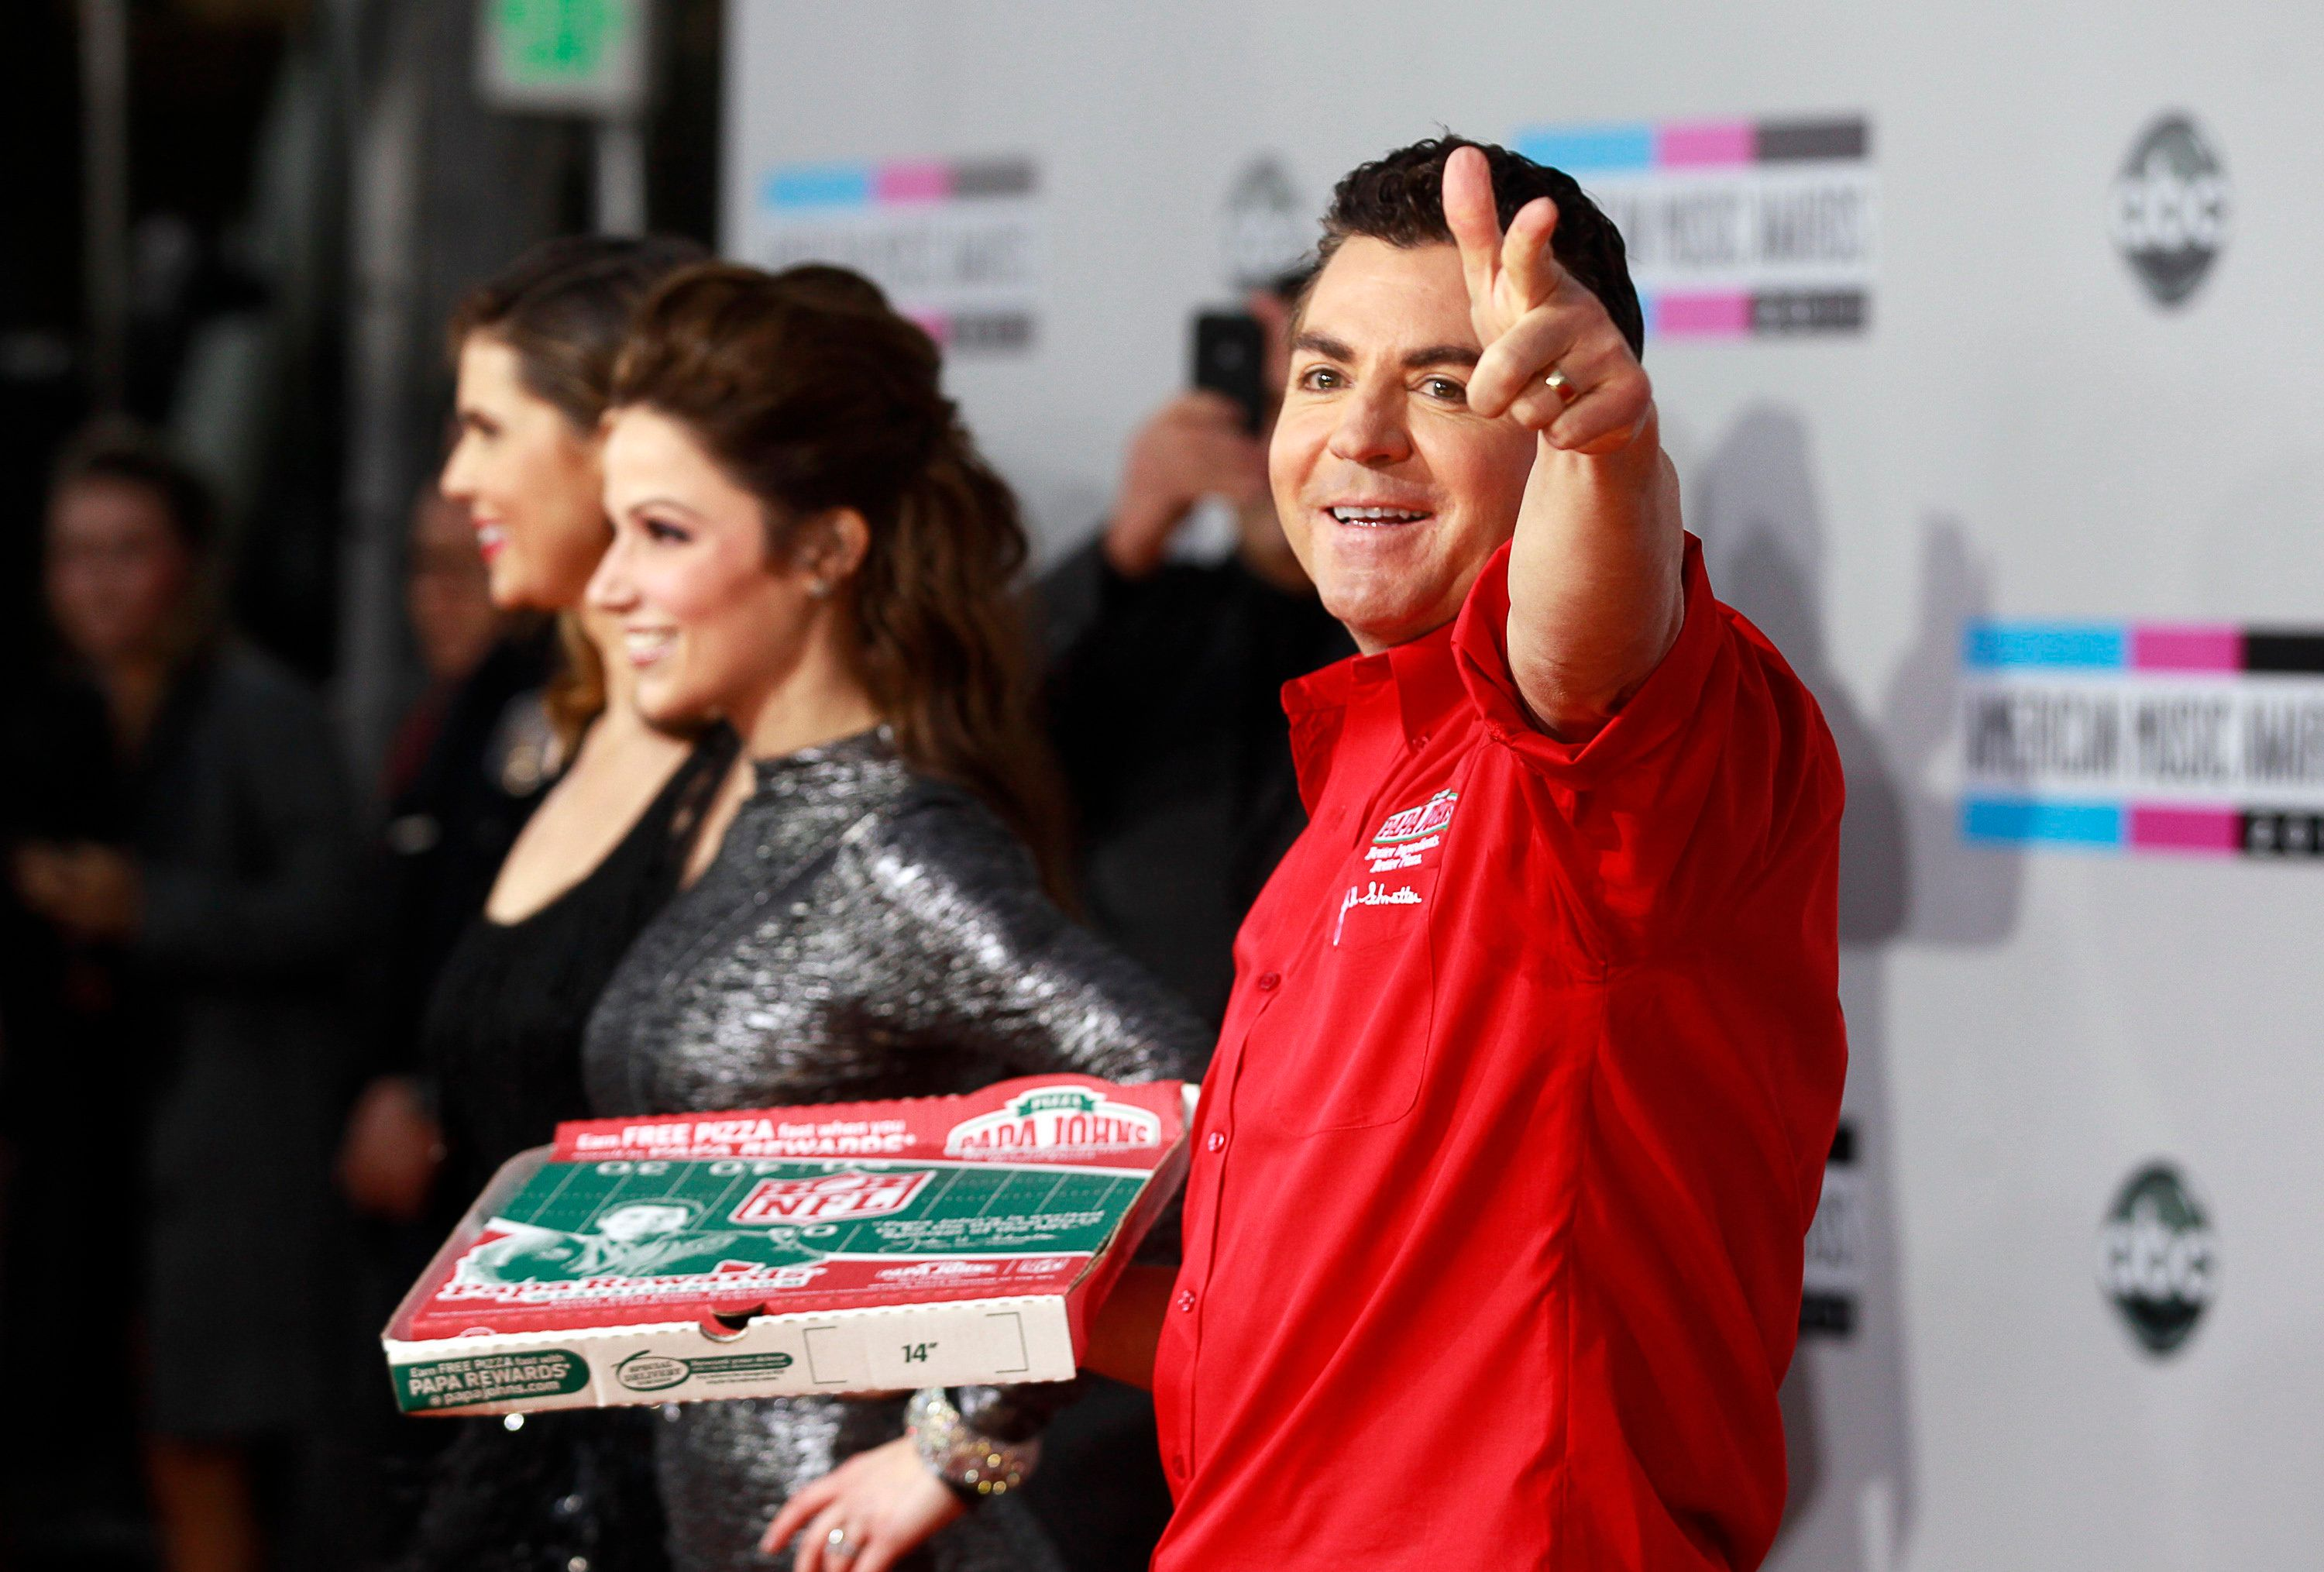 Papa John's founder John Schnatter steps down as company's CEO